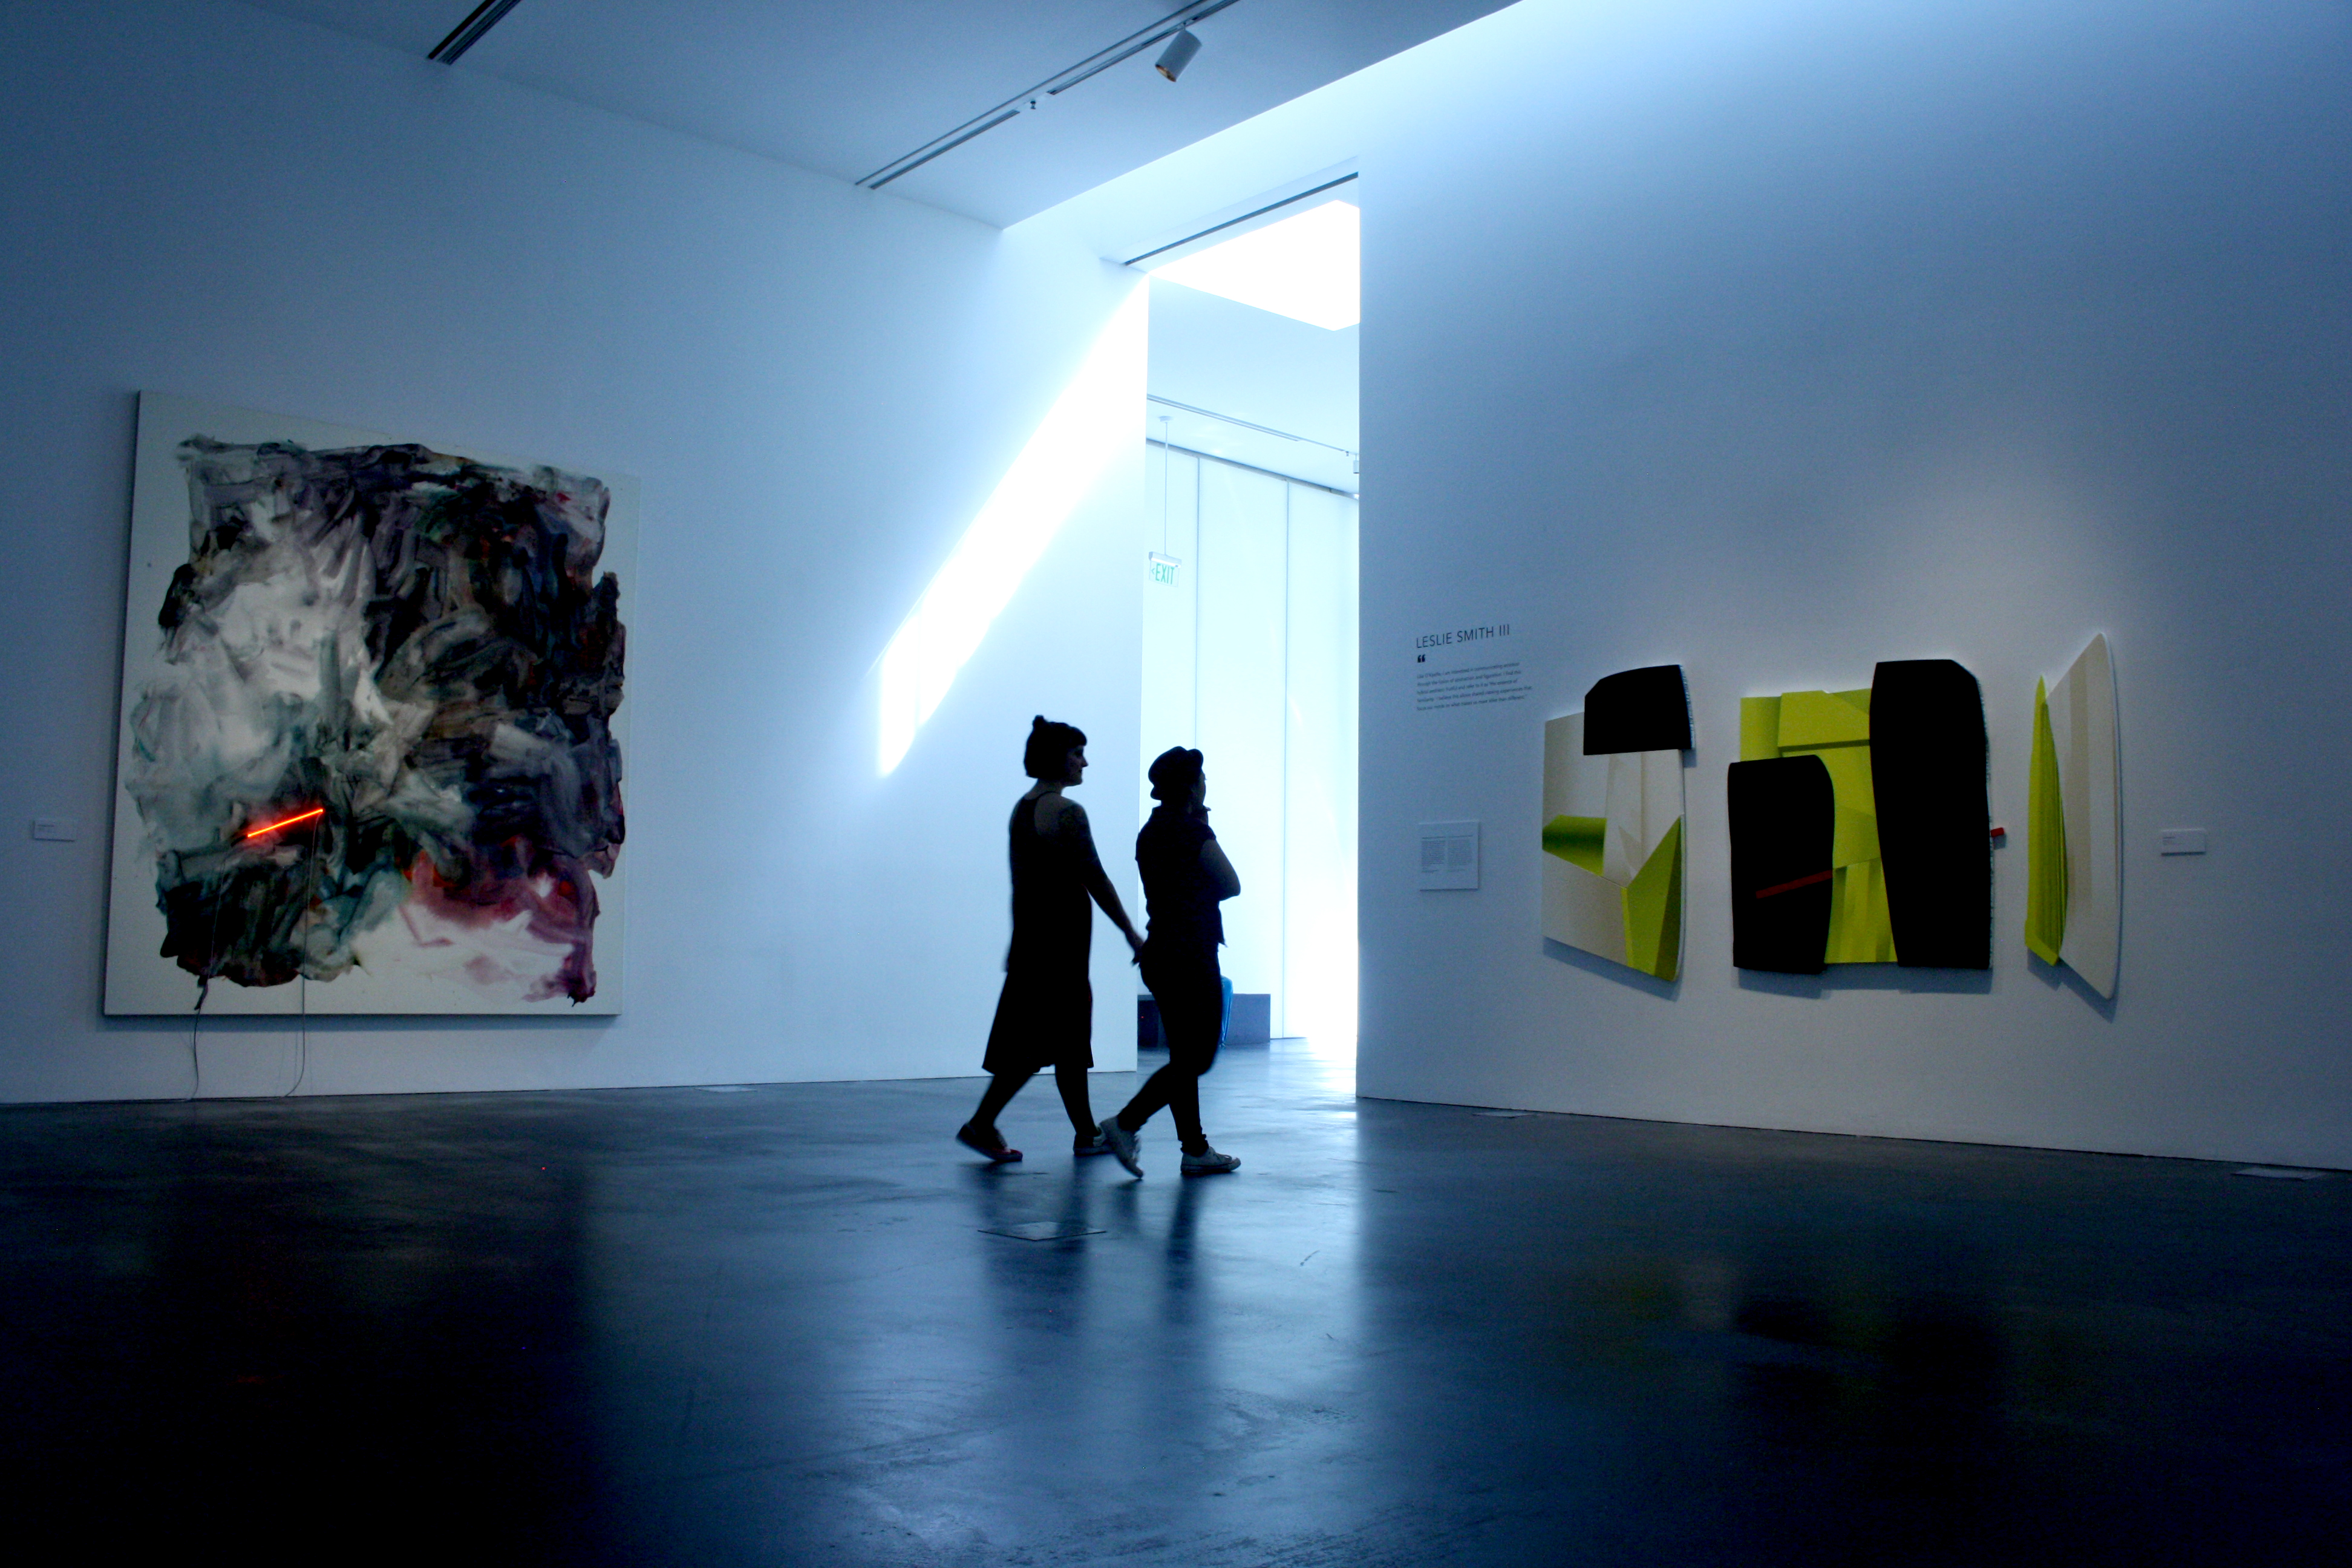 Two unidentifiable people in a gallery look at an abstract artwork. The ceiling is high and the floor is concrete.